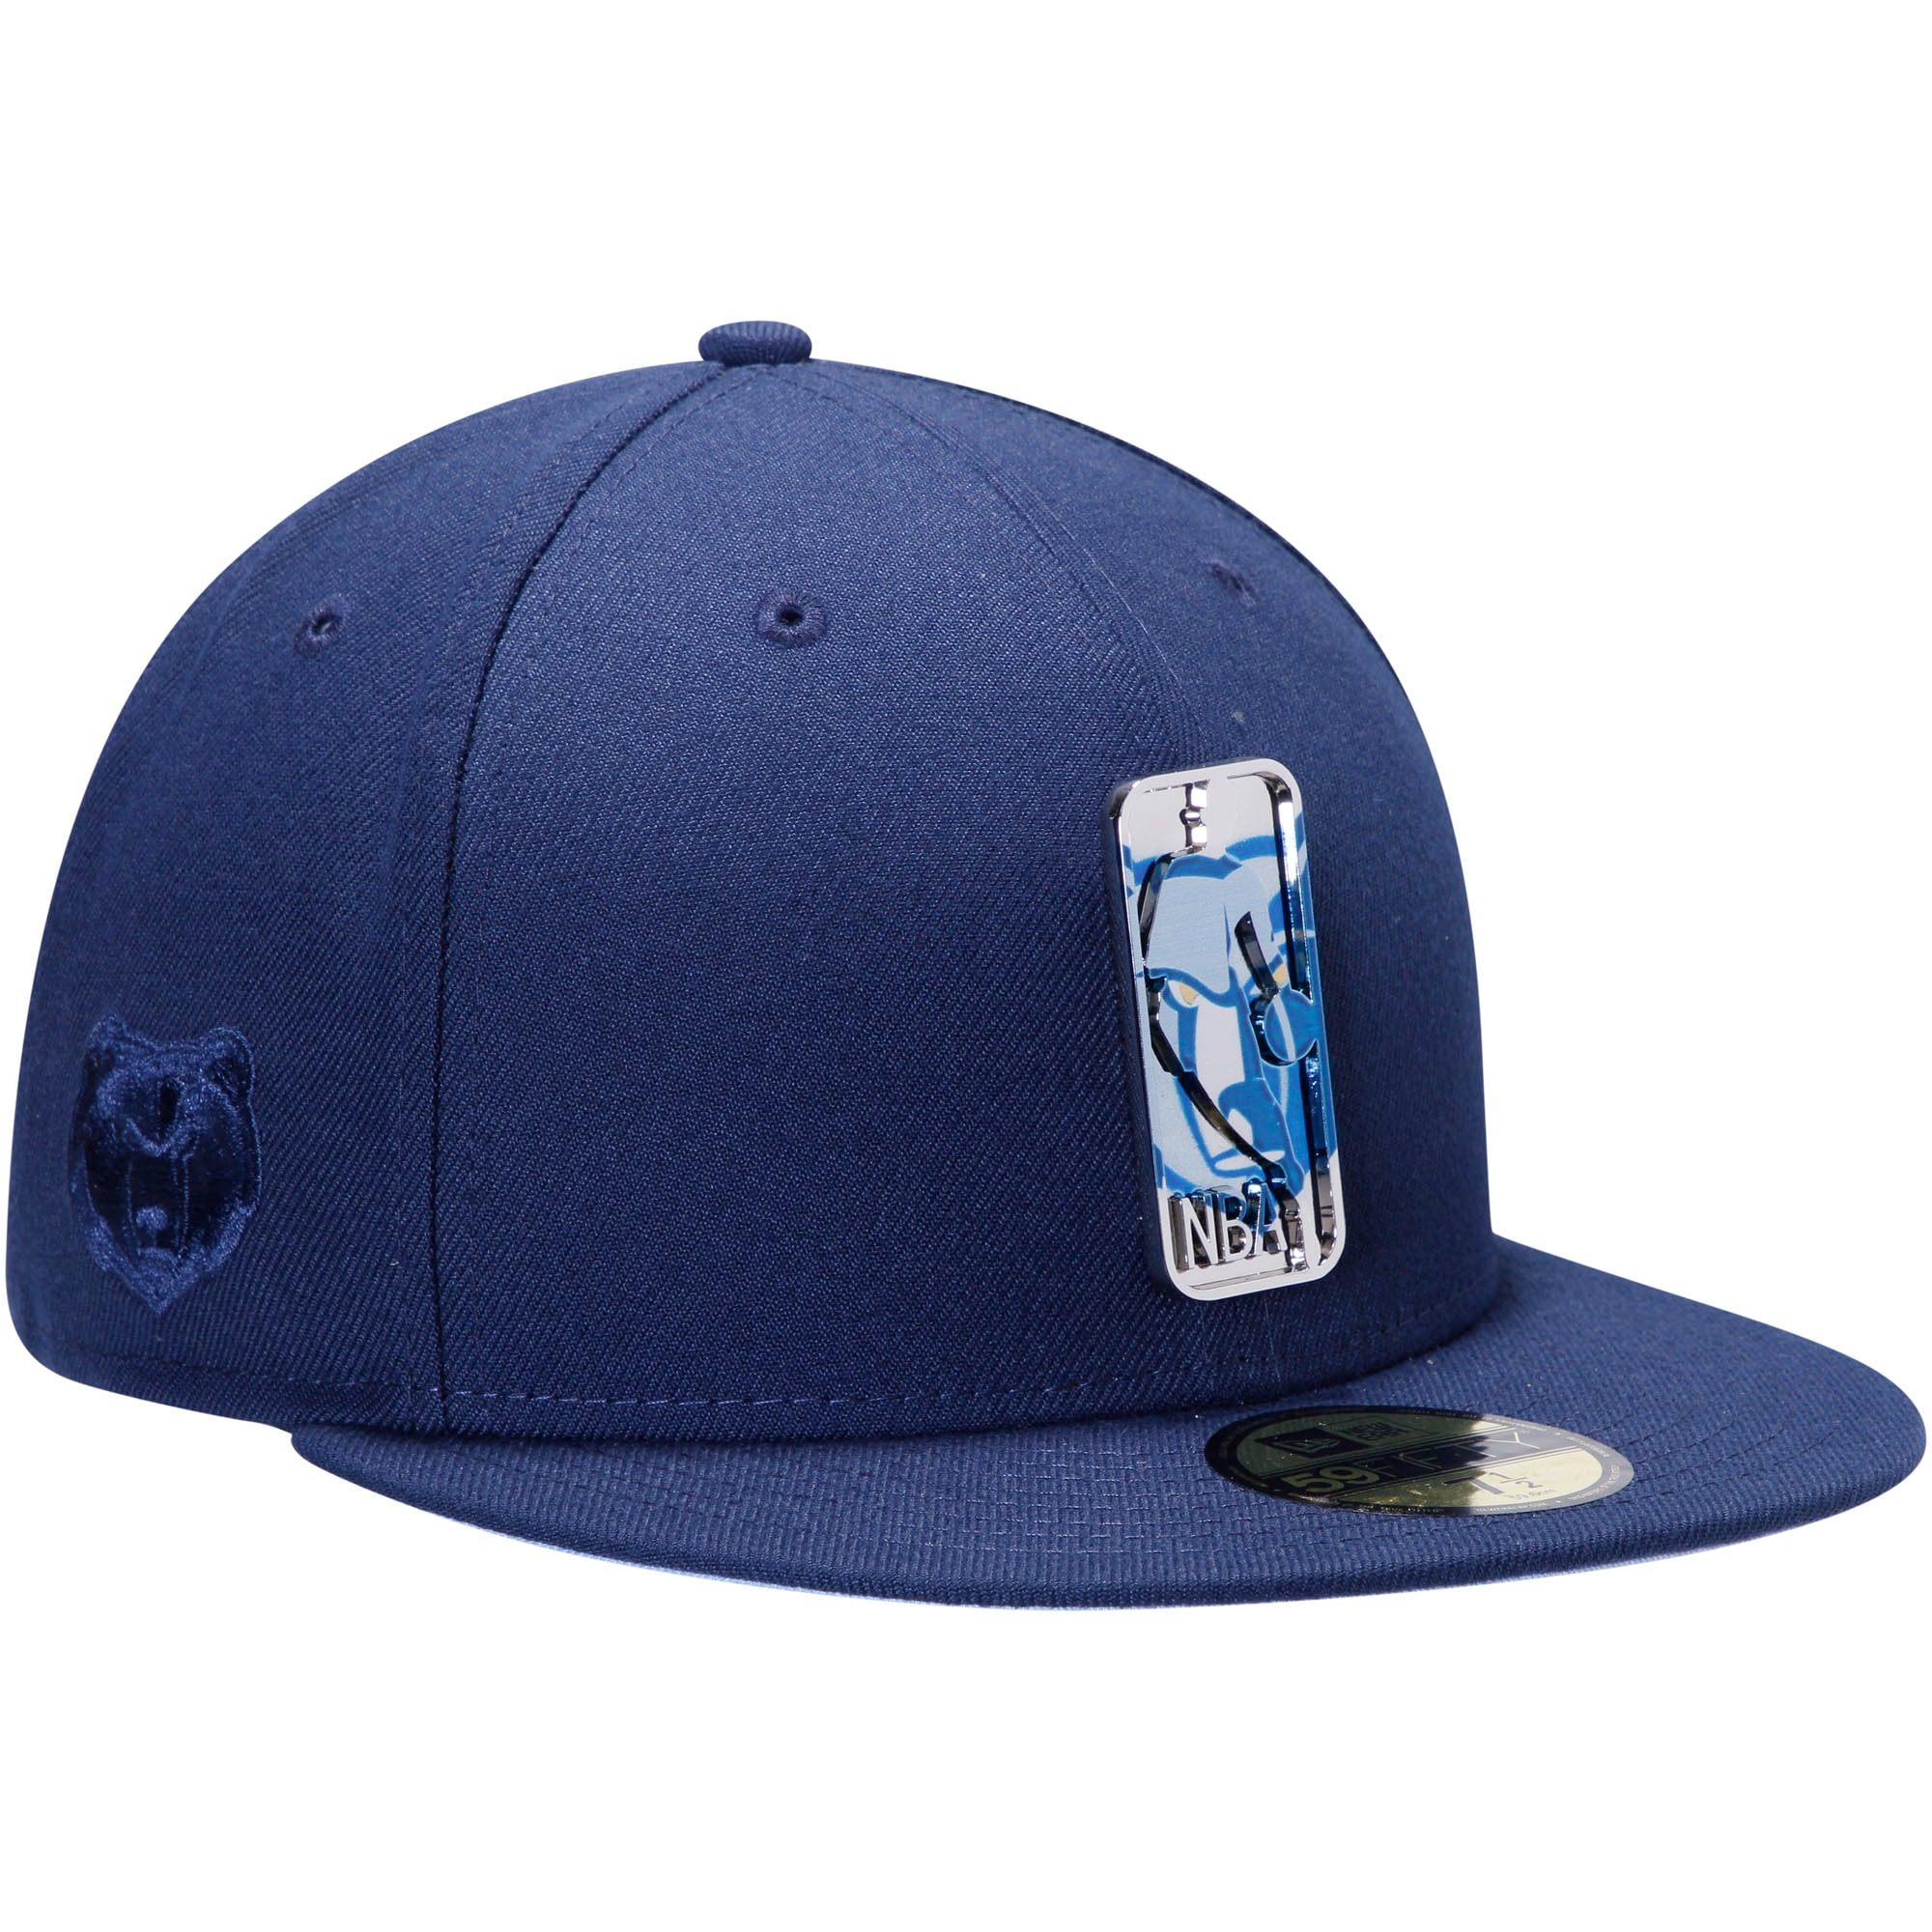 Memphis Grizzlies New Era Mixed Metal 59FIFTY Fitted Hat - Navy